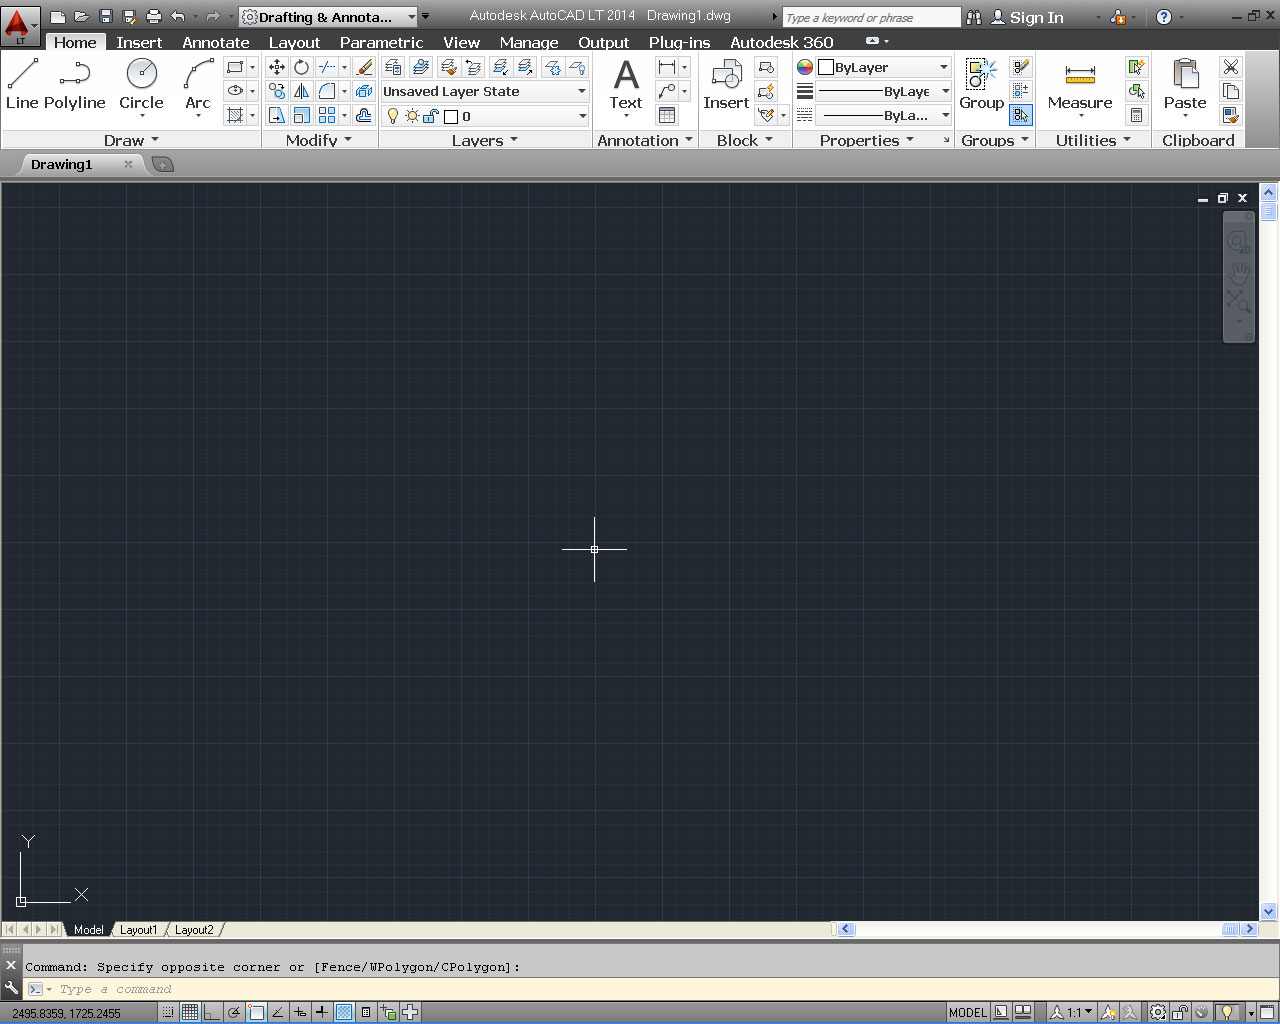 autocad 2014 drafting workspace